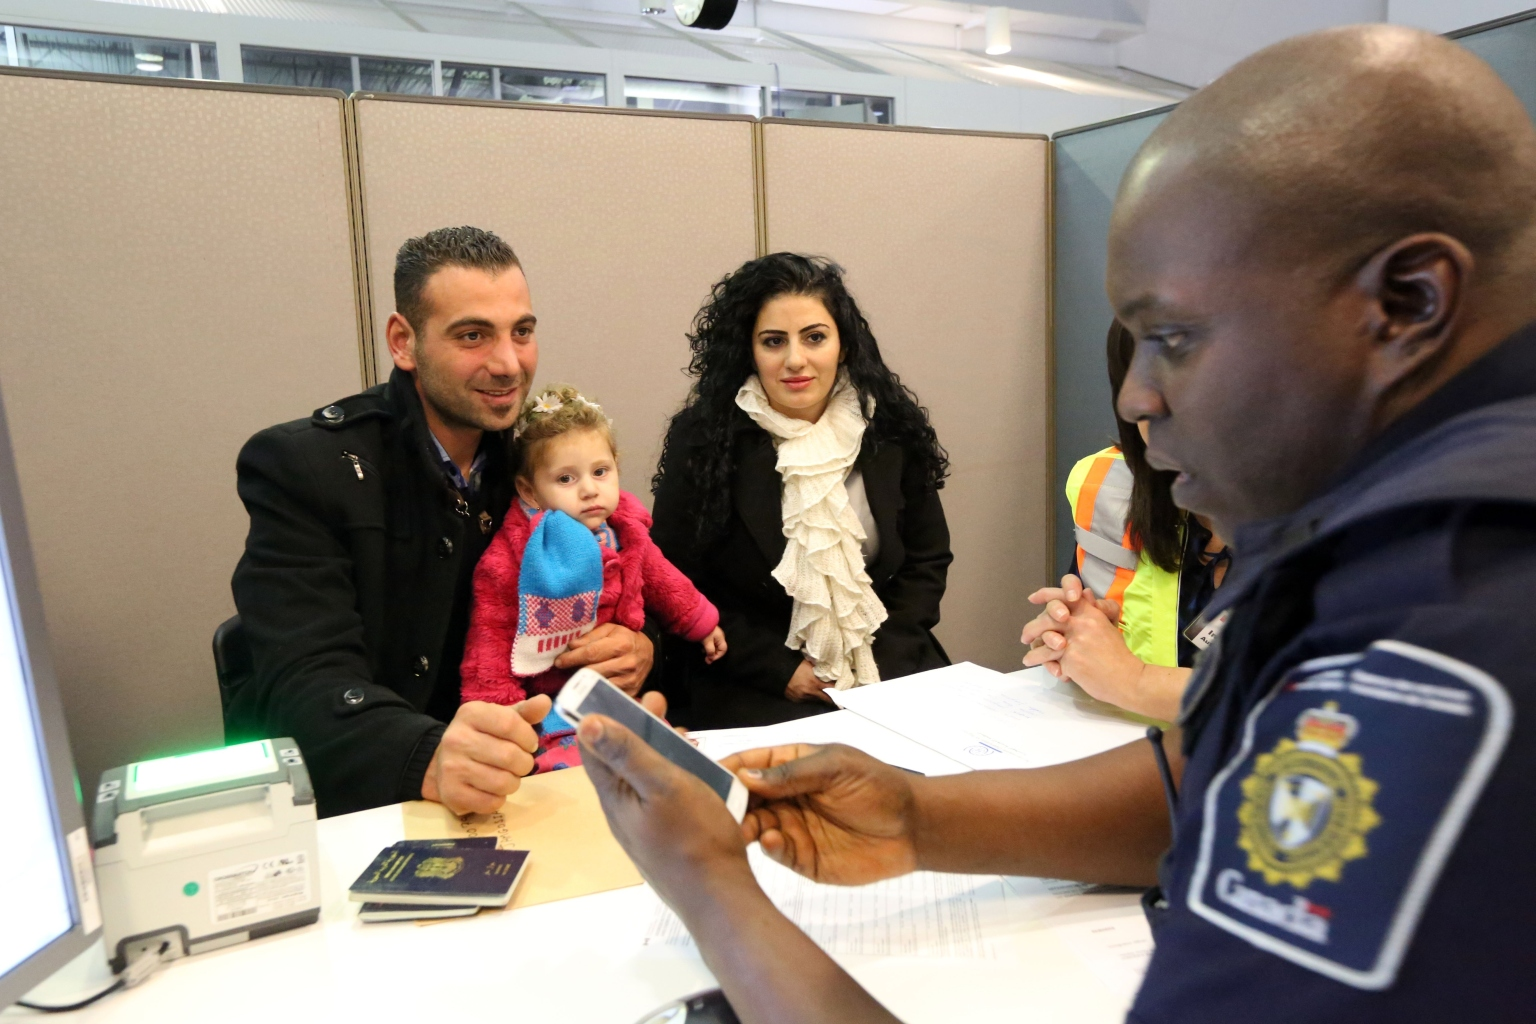 TORONTO, CANADA - DECEMBER 11: Border Services Officer Boakye-Cotie processes a Syrian refugee family at Toronto Pearson International Airport on December 11, 2015. (Photo by Kenneth Allan/Canada Border Services Agency/Pool/Anadolu Agency/Getty Images)